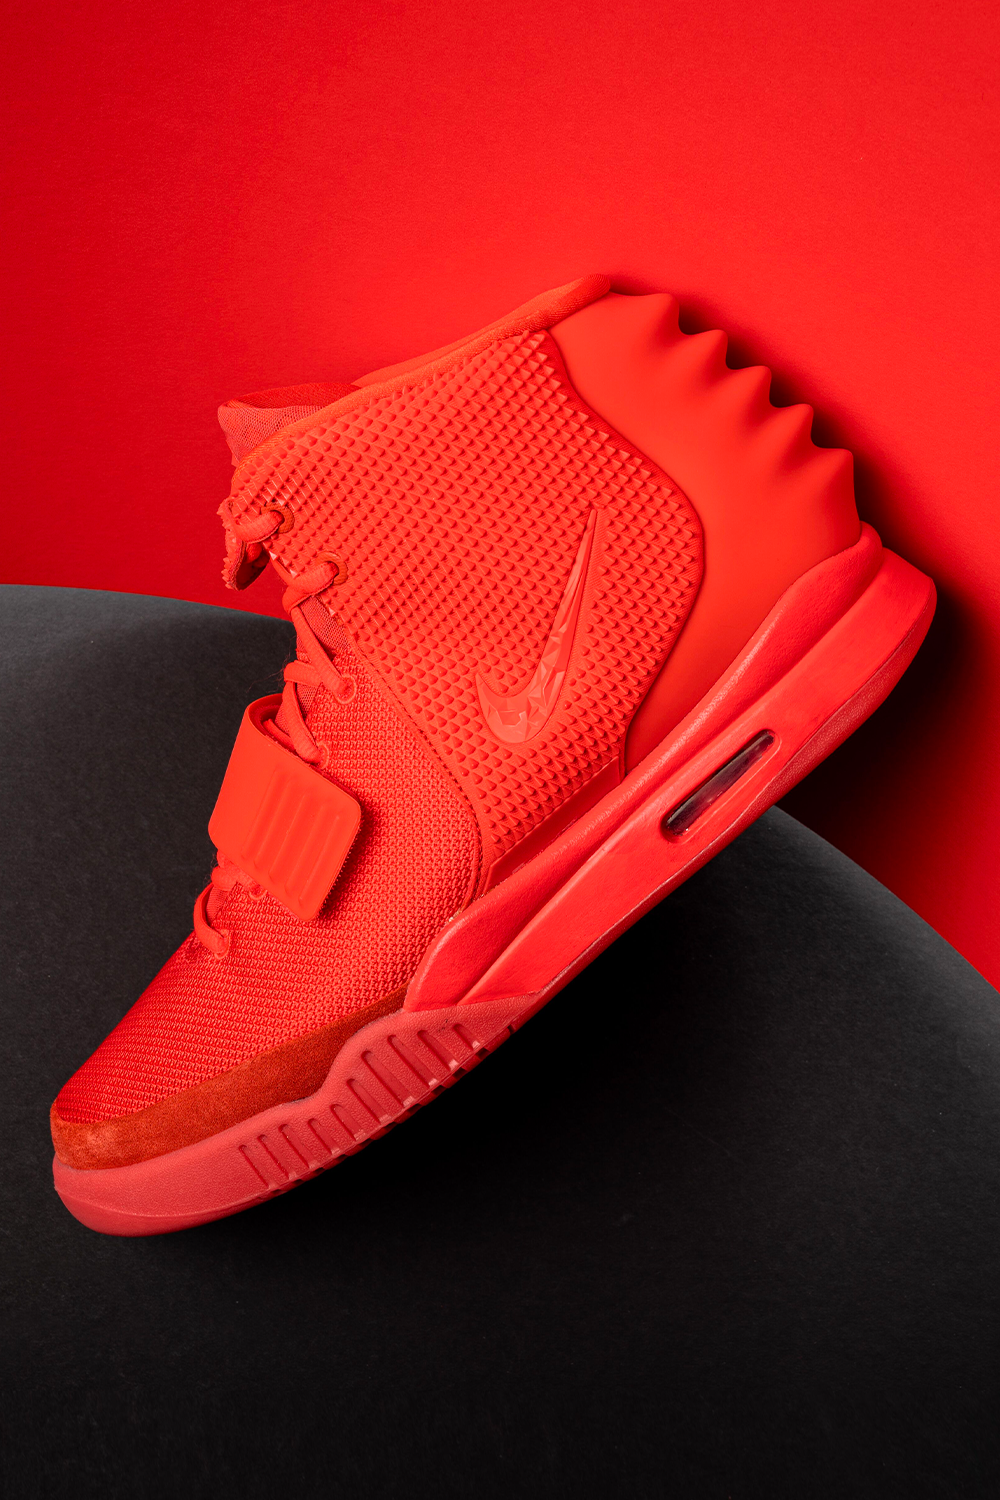 Nike Air Yeezy 2 Sp Red October 508214 660 2014 Air Yeezy Nike Air Shoes Yeezy 2 Red October